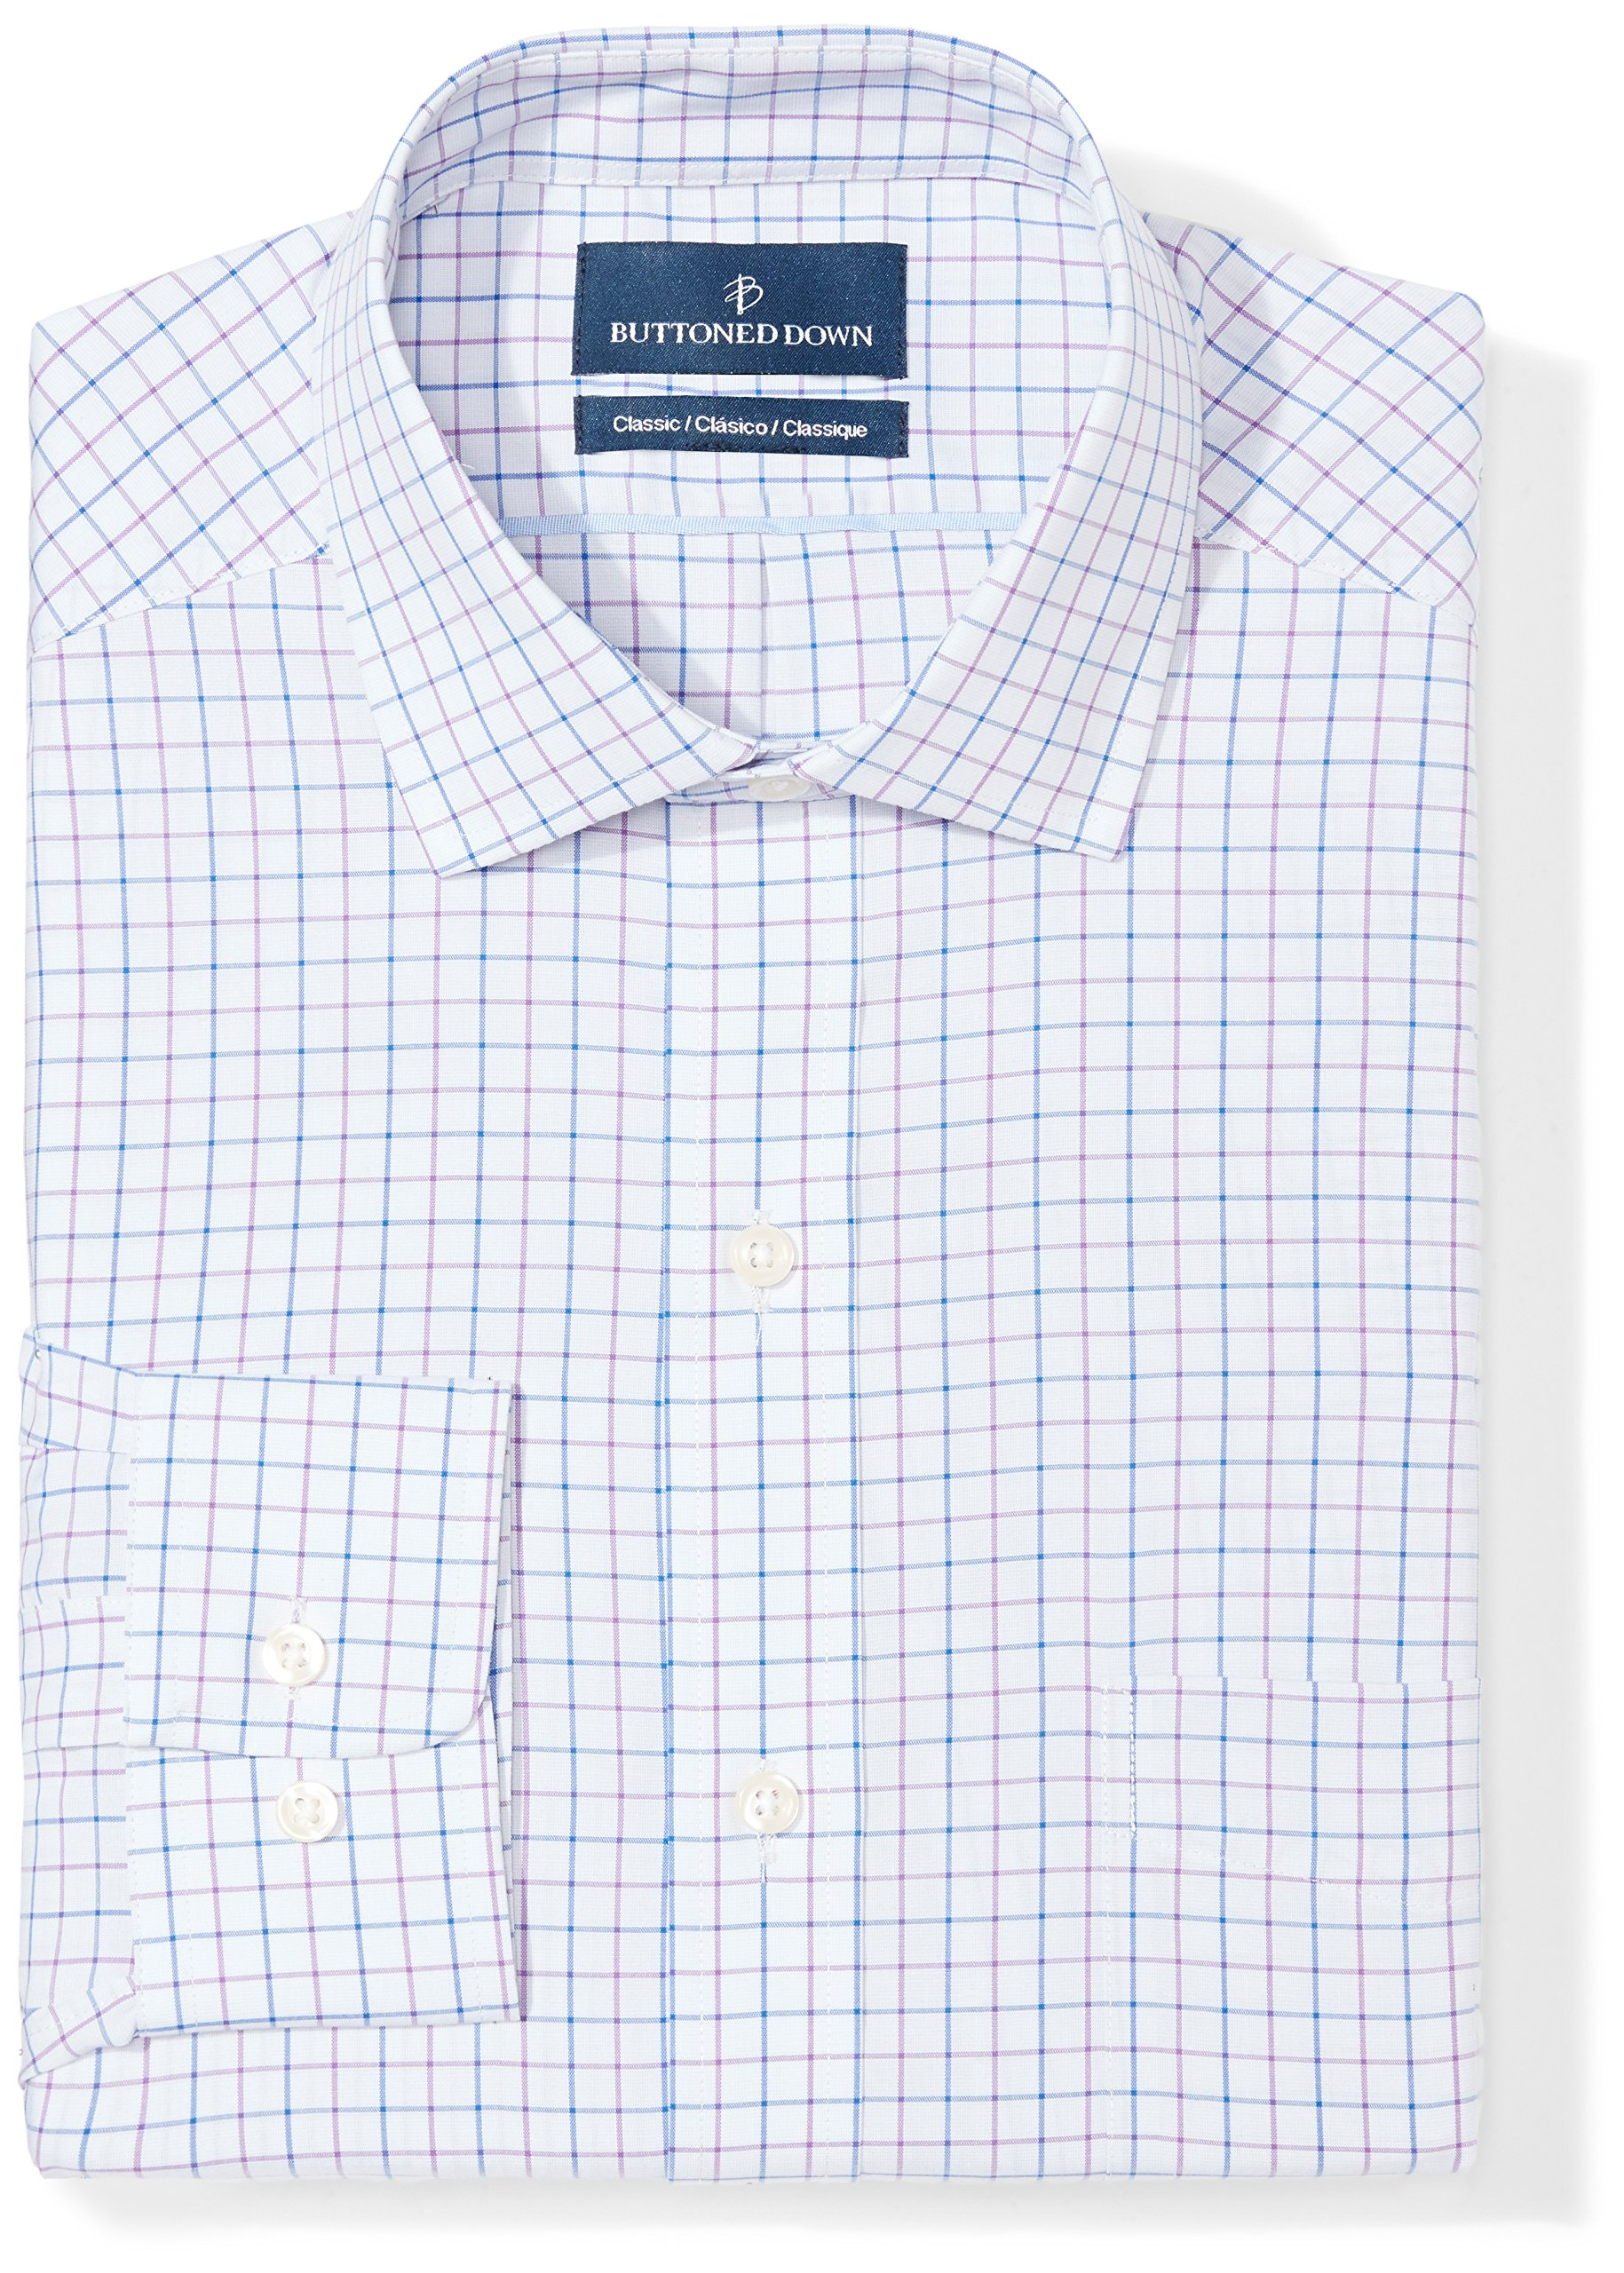 Buttoned Down Men's Classic Fit Spread-Collar Pattern Non-Iron Dress Shirt, Grey/Purple/Blue Check, 17.5'' Neck 32'' Sleeve by Buttoned Down